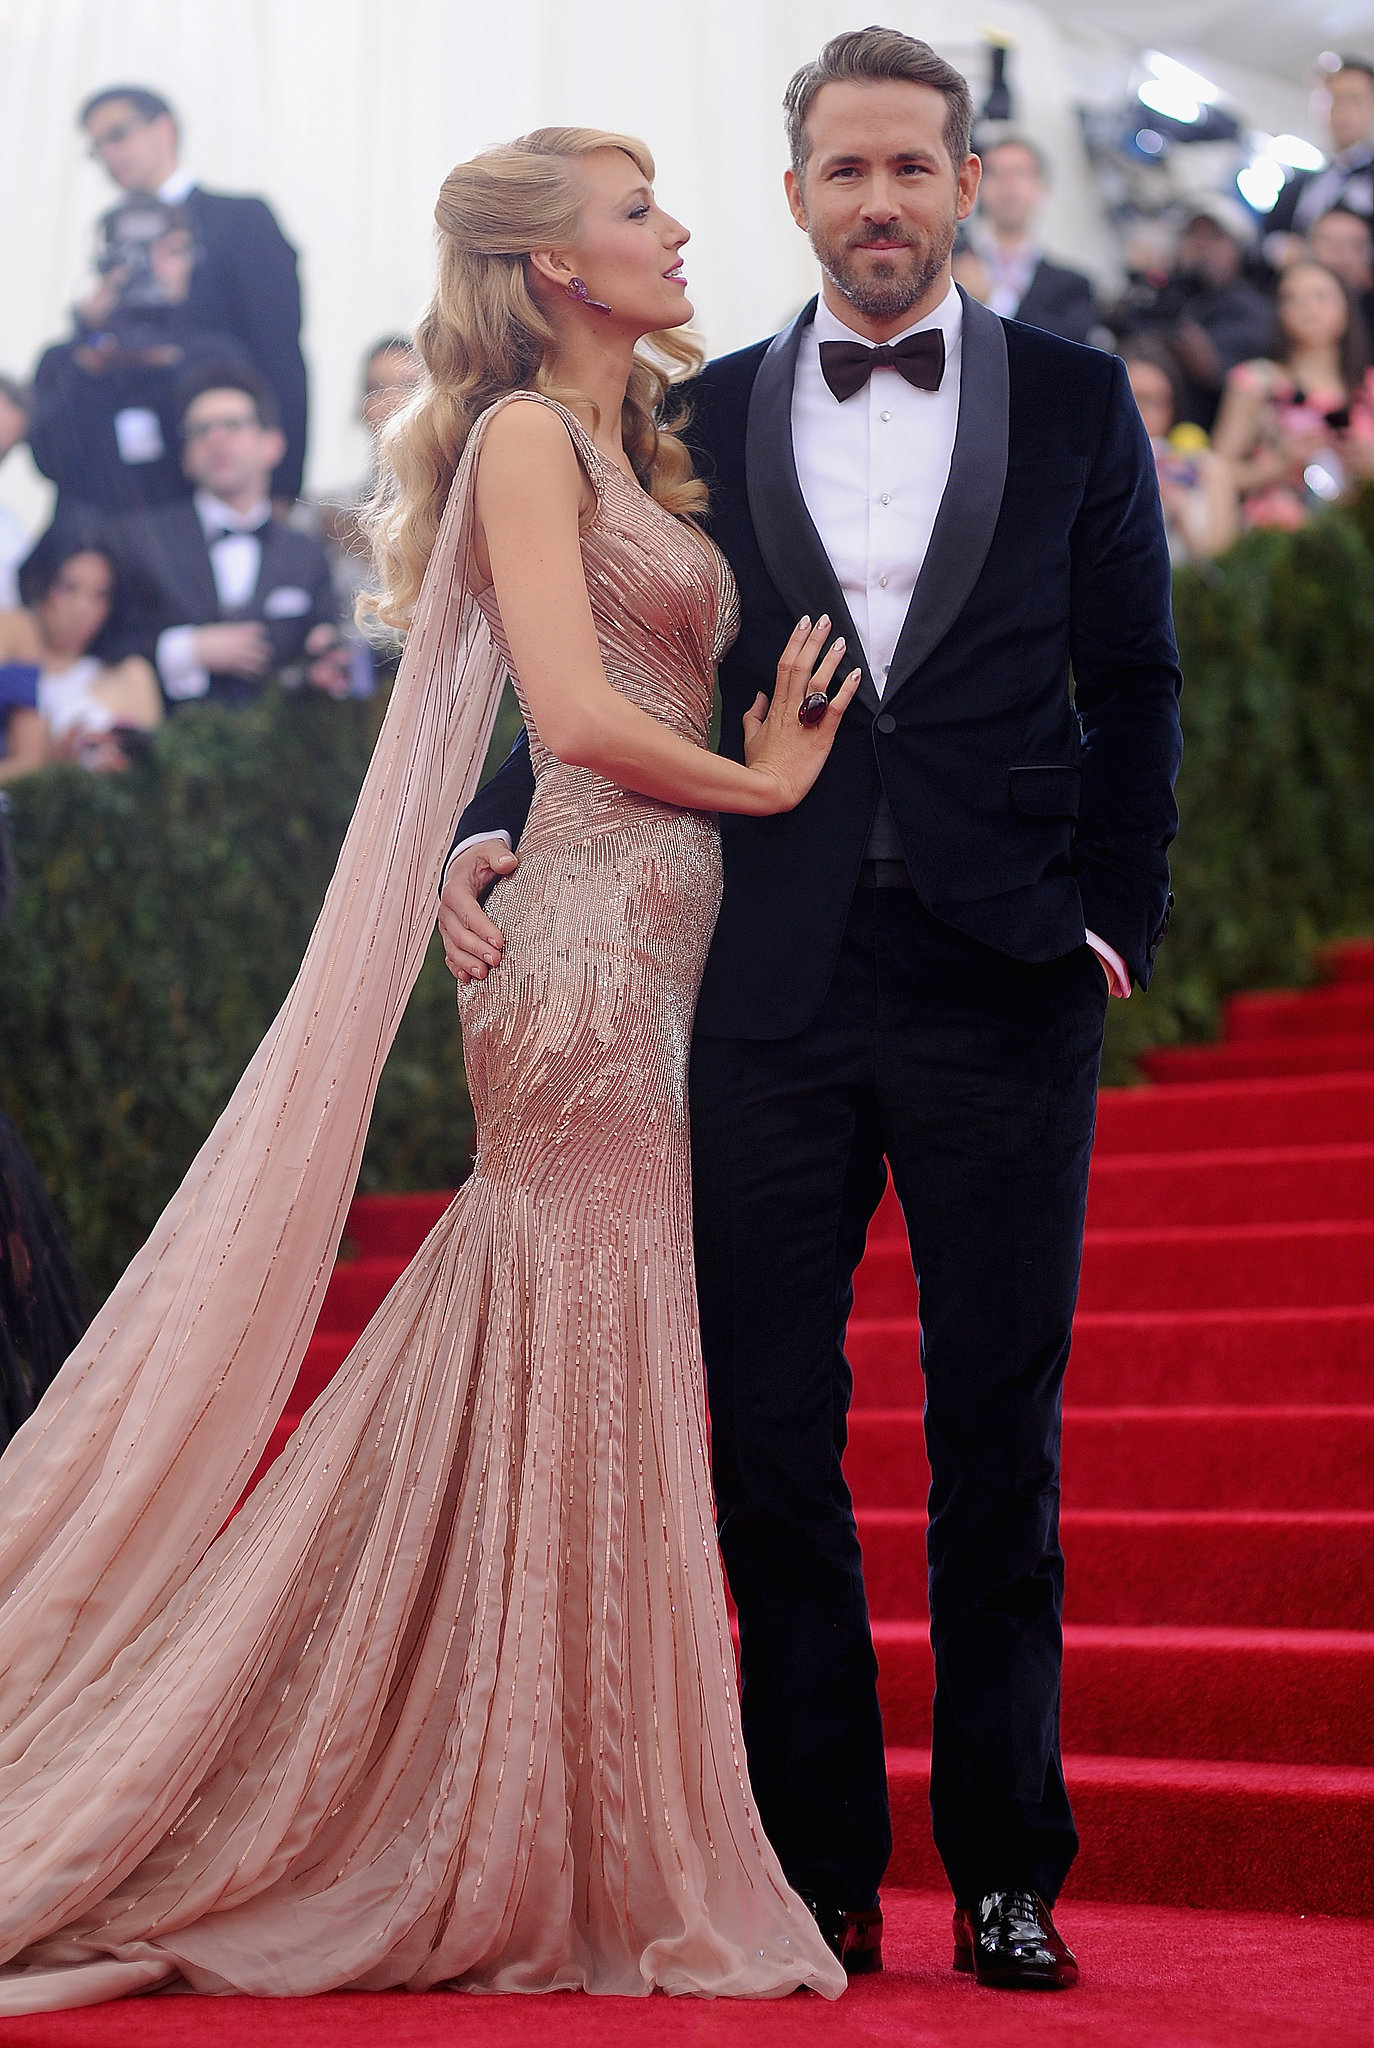 Blake Lively and Ryan Reynolds looked like quite the golden couple when they arrived at the 2014 Met Gala in NYC.